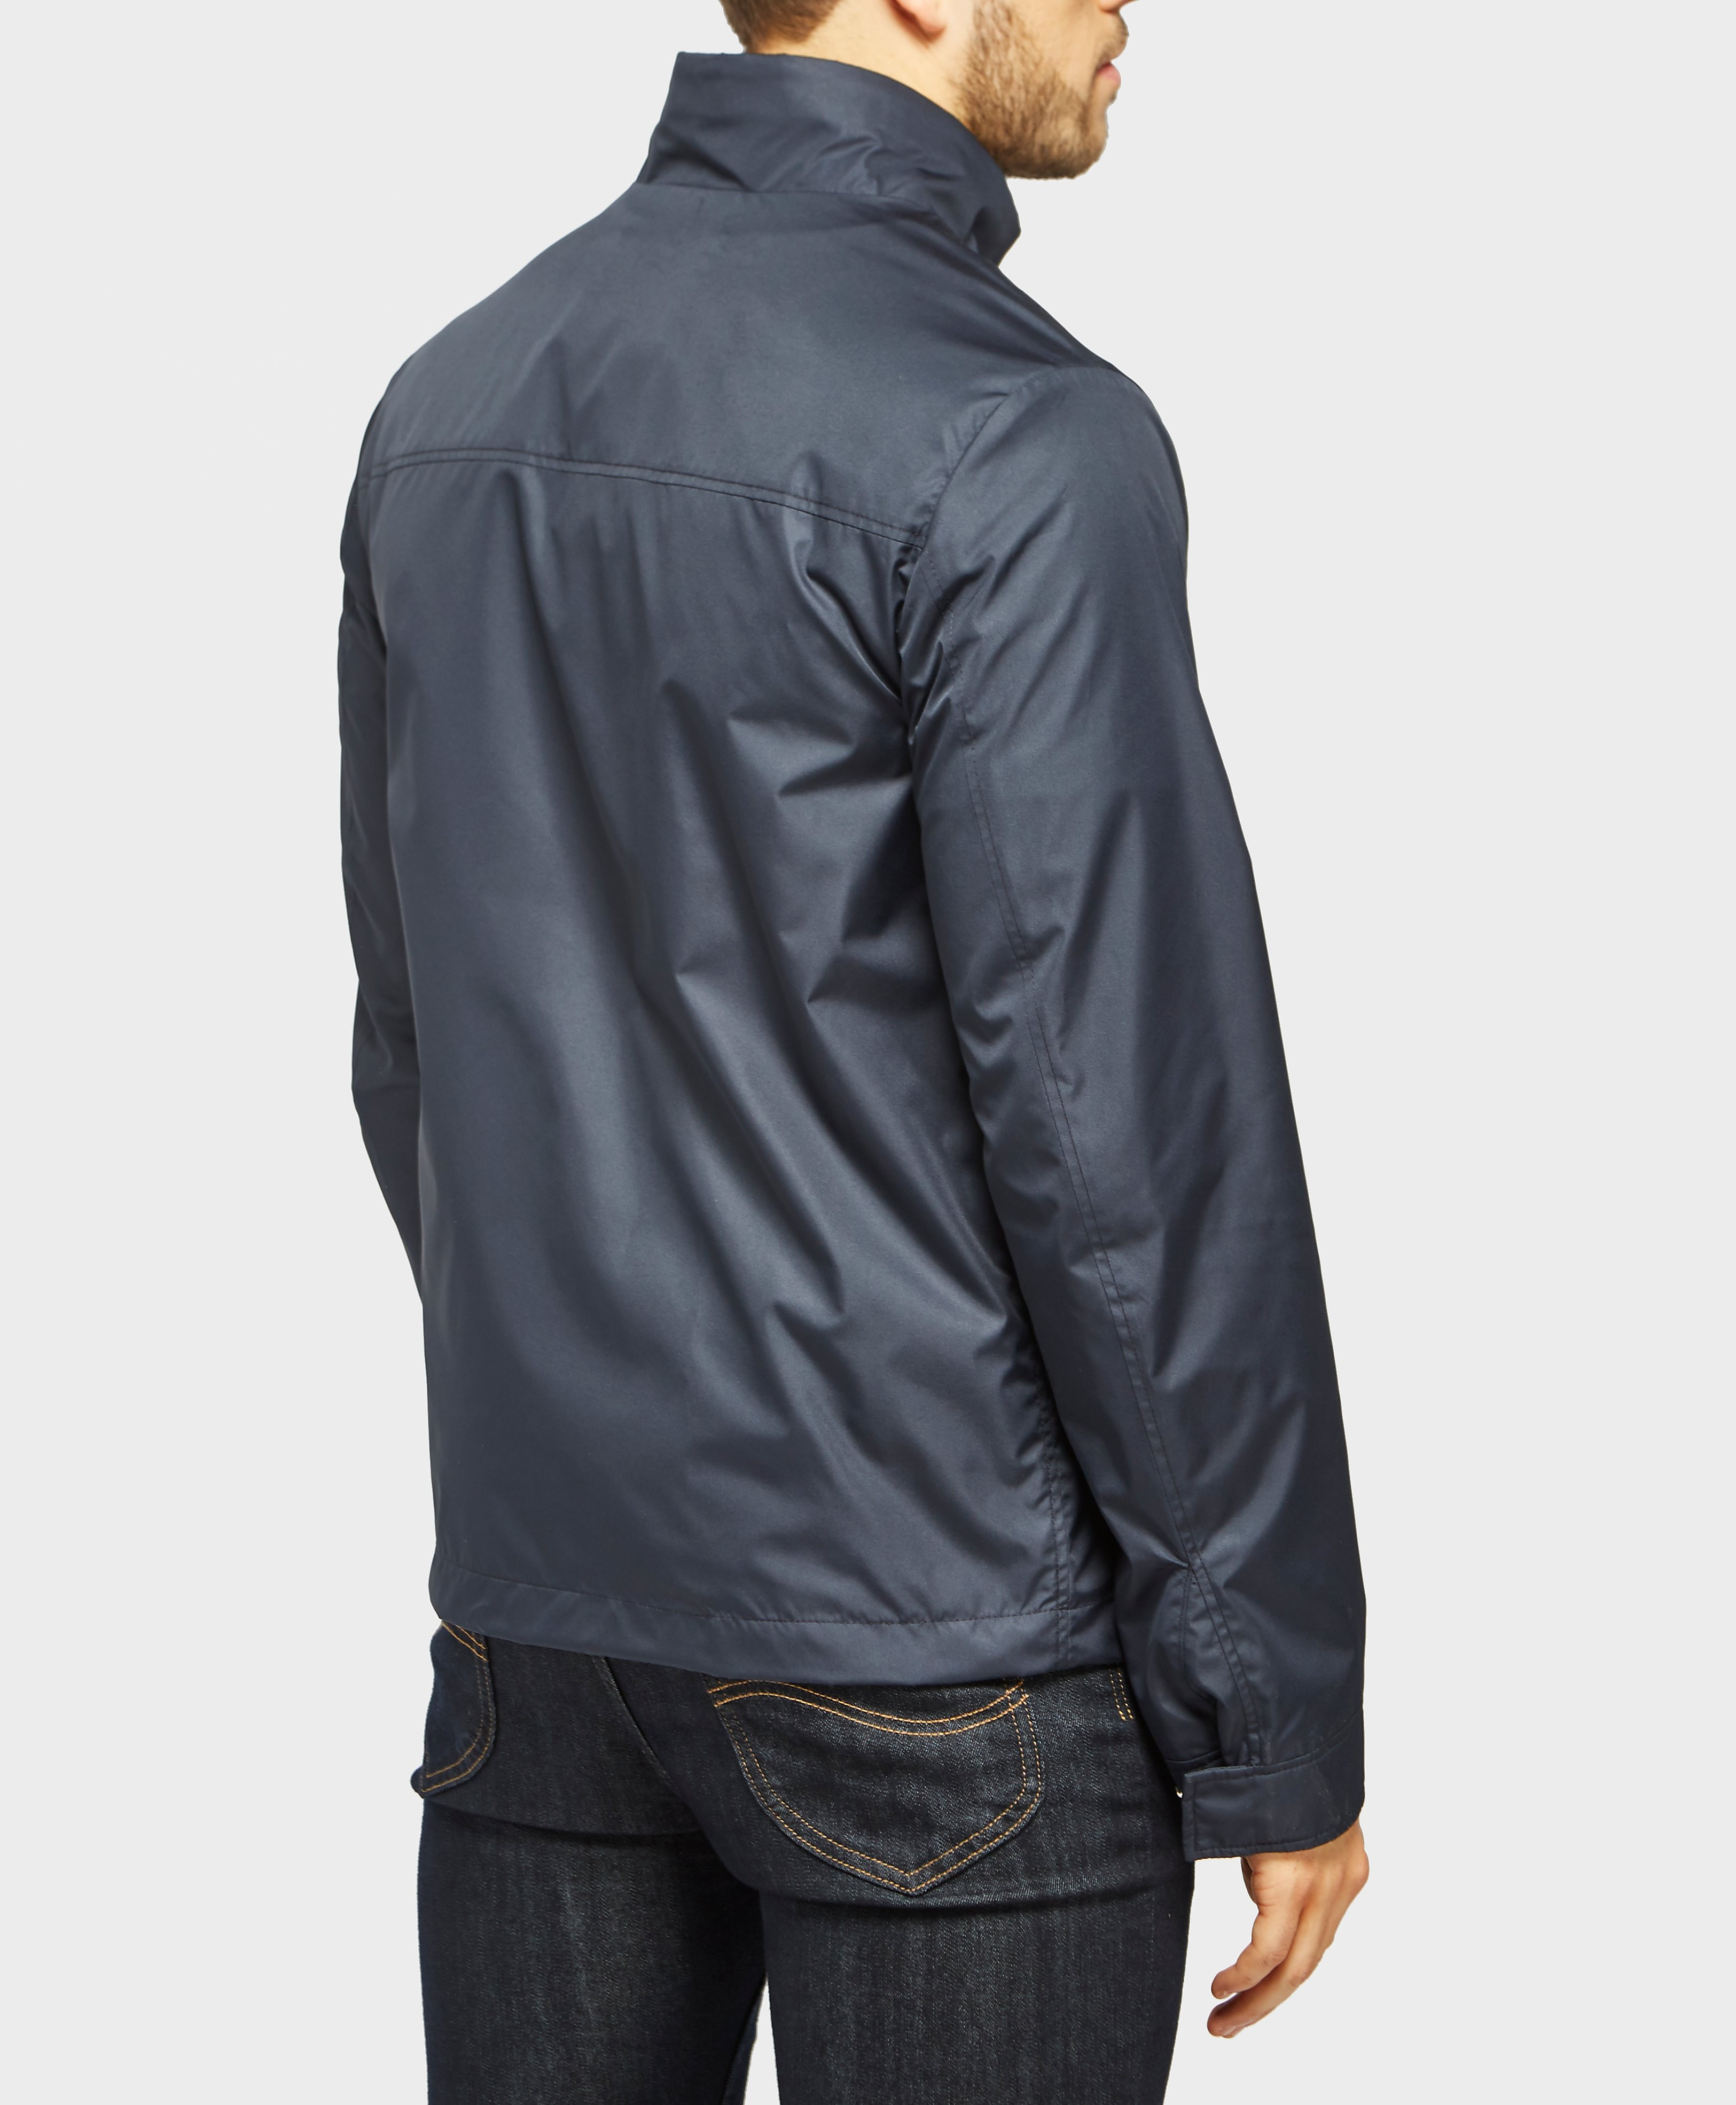 Paul and Shark Woven Jacket